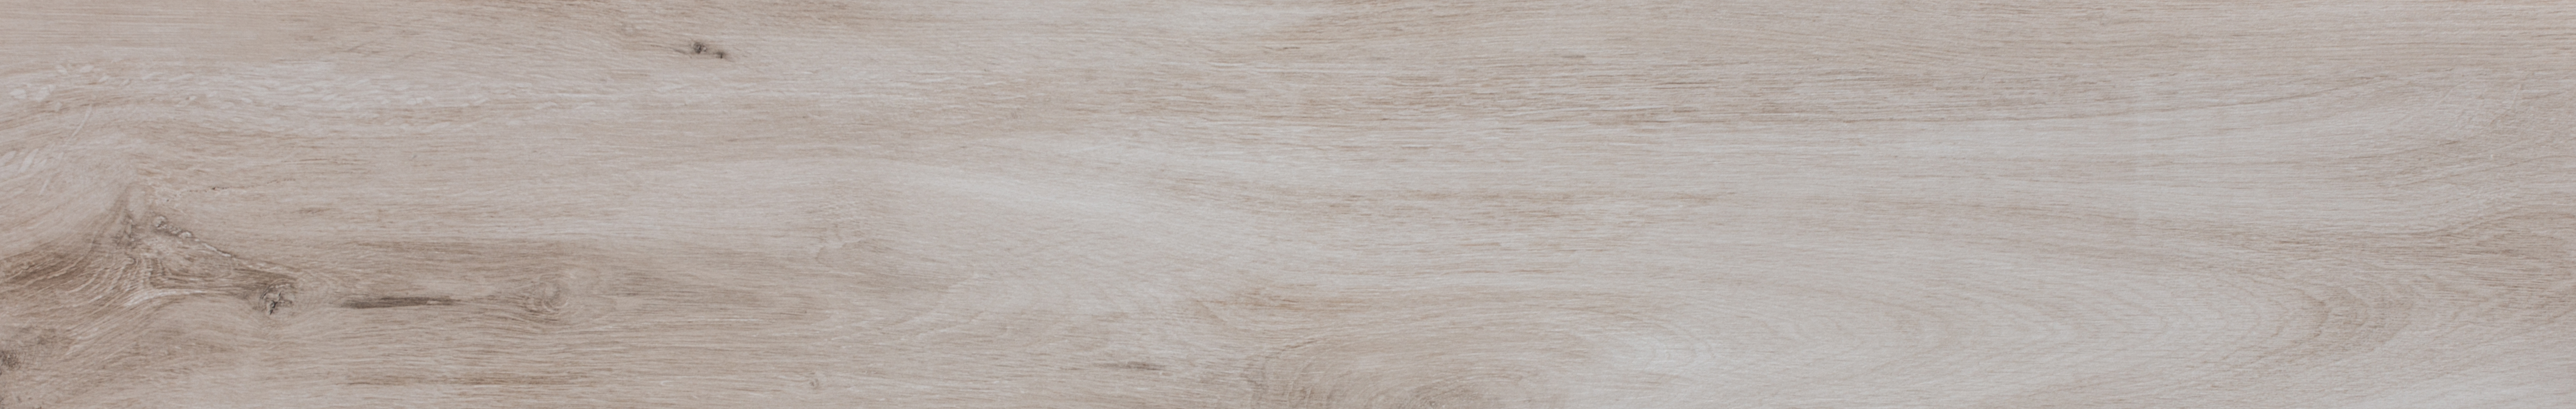 Cavallino Wood Grey 1202mm x 193mm x 10mm